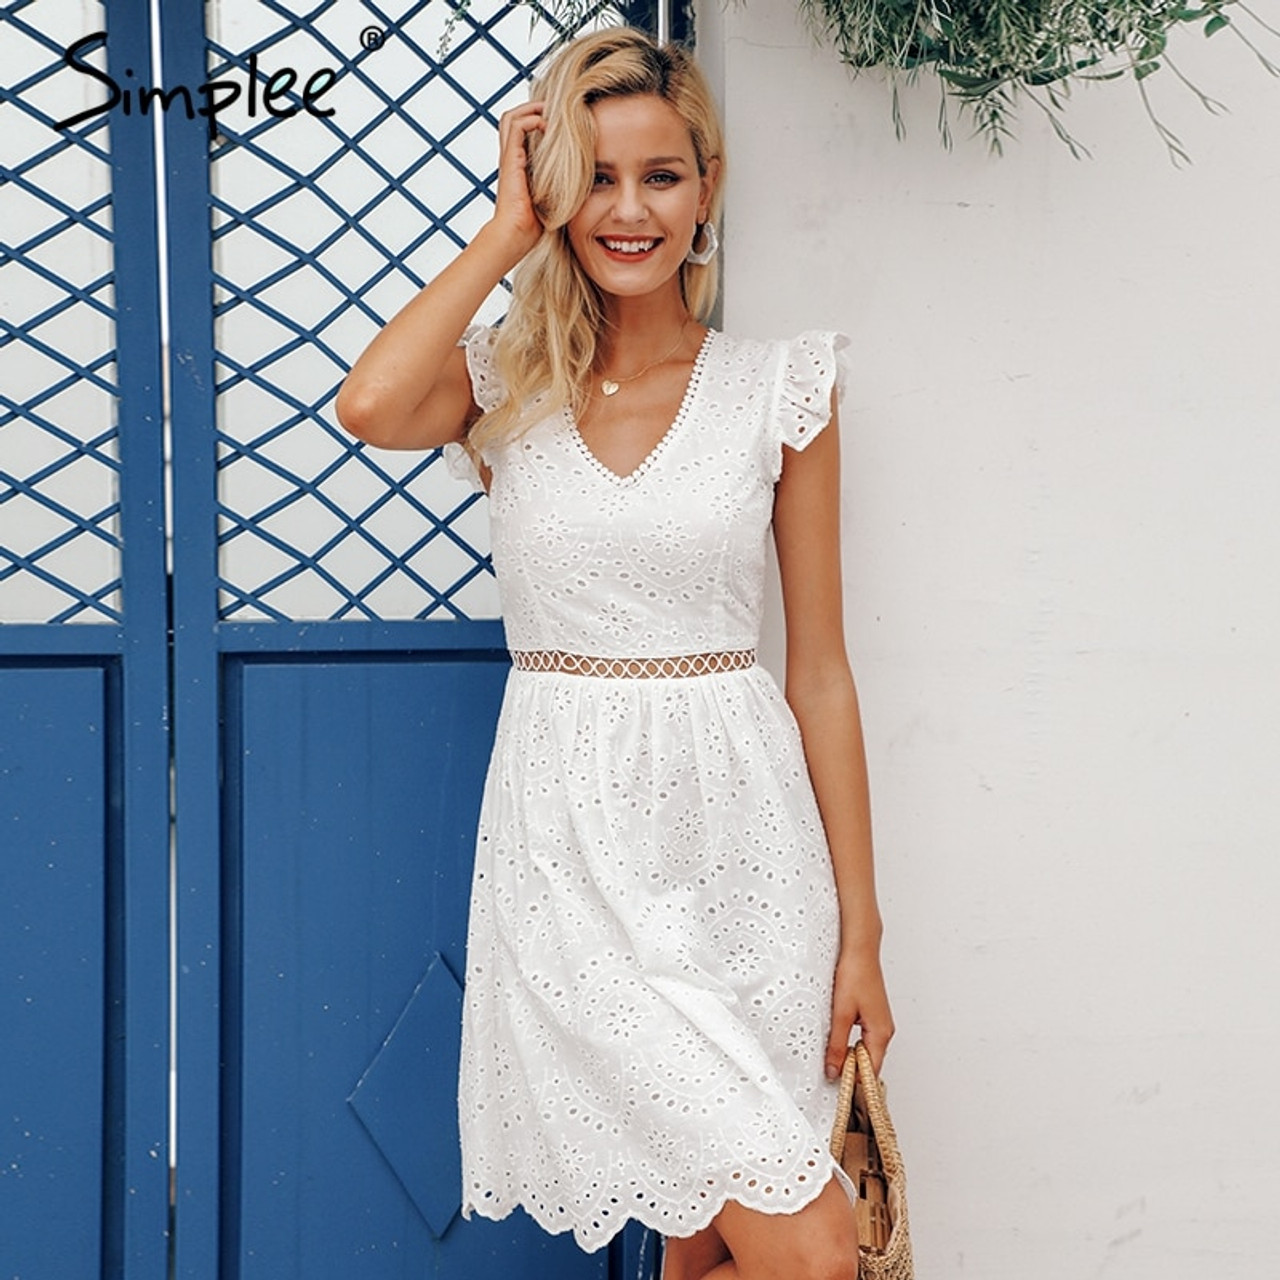 f023e8248252 ... Simplee Sexy white women summer dress 2019 Backless v neck ruffle  cotton lace dress Vintage holiday ...